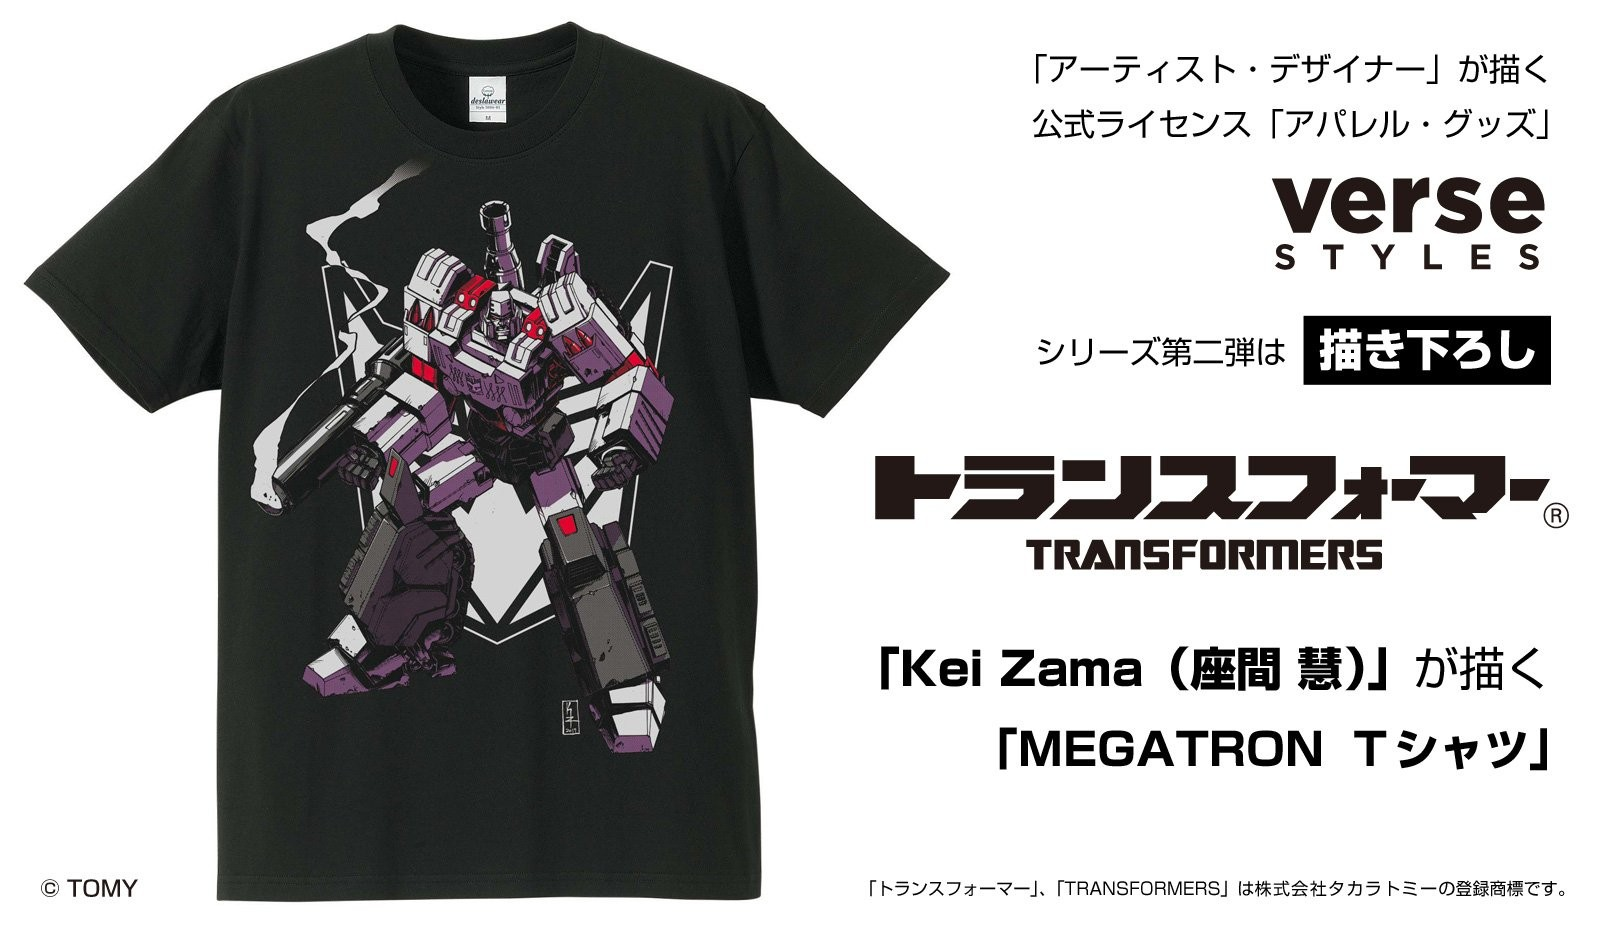 Transformers News: Licensed Kei Zama Megatron and Optimus Prime T-Shirts from Verse Styles